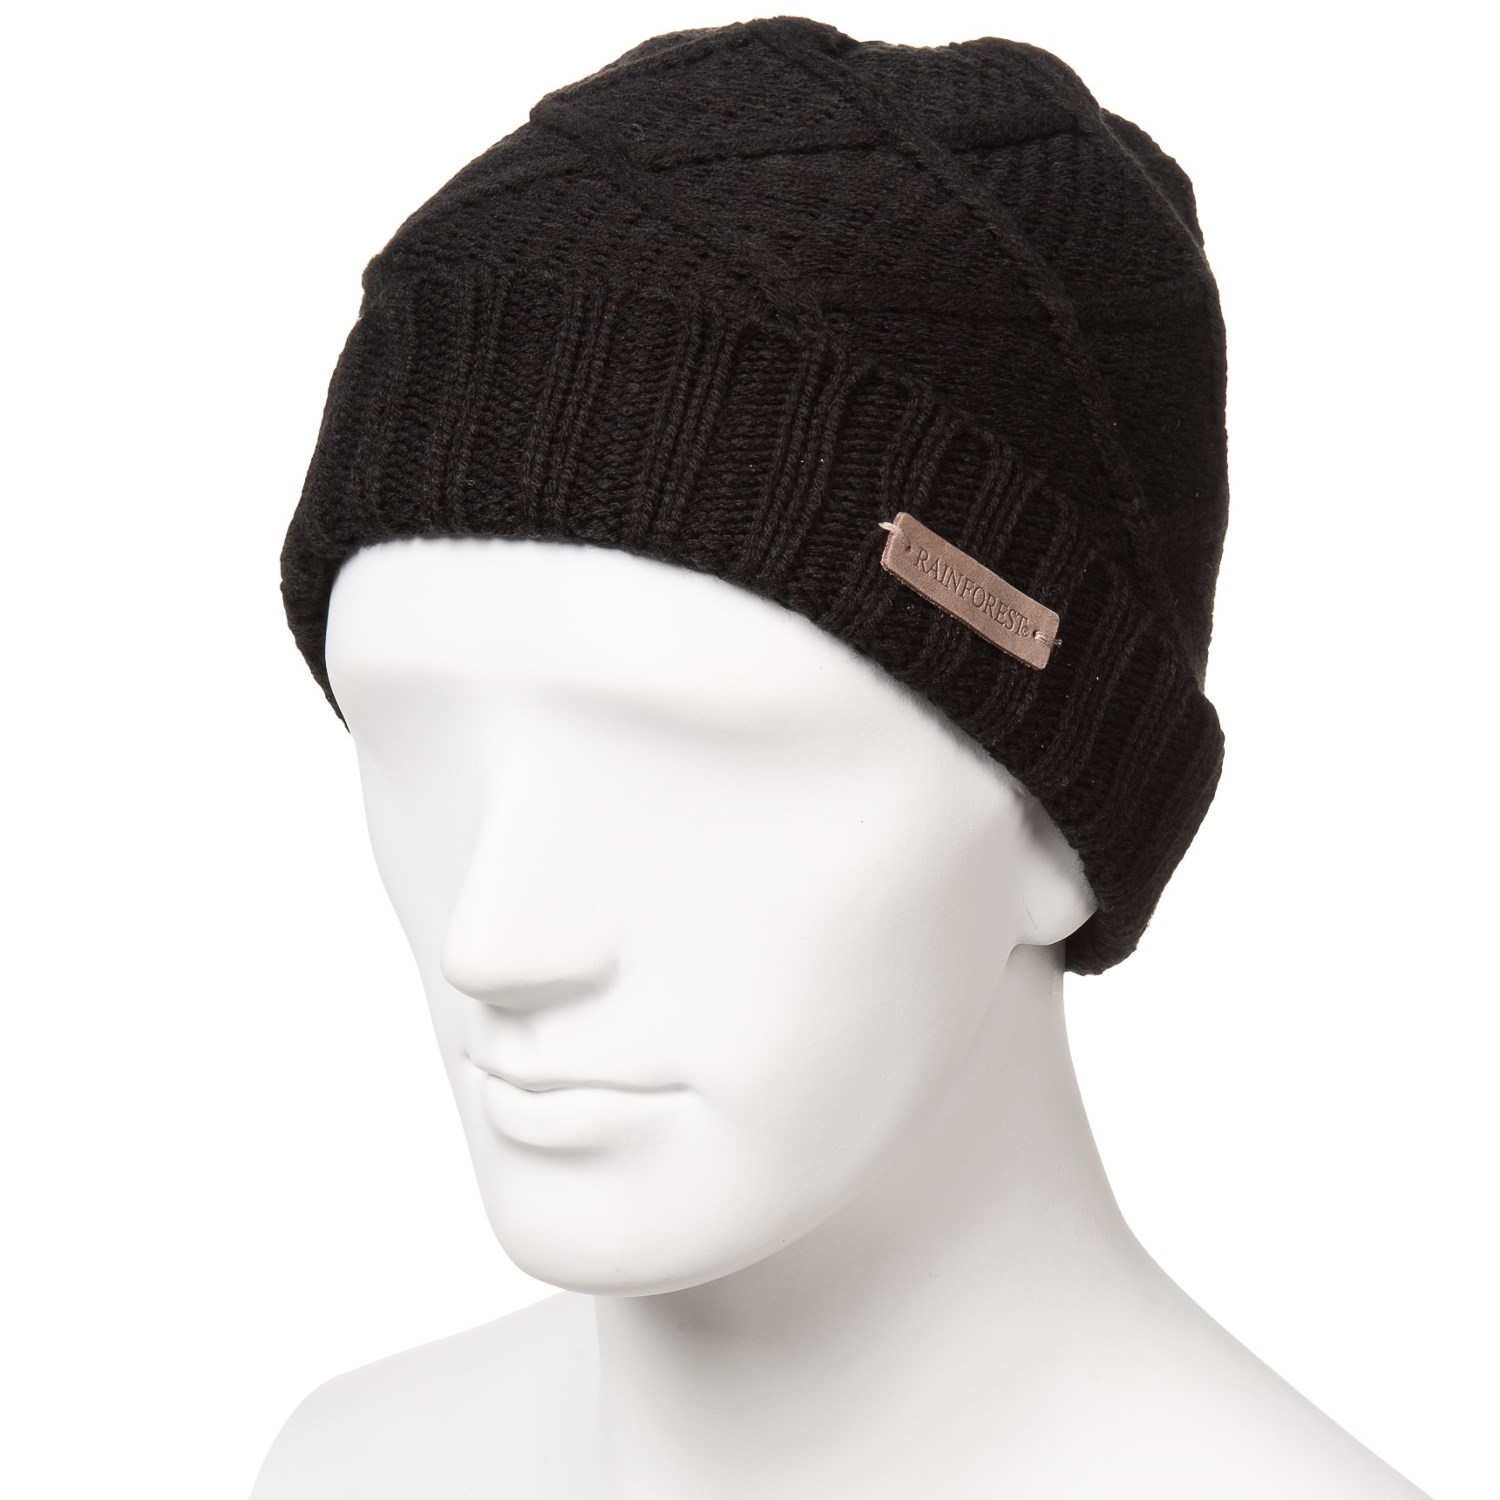 Rainforest Jersey-Lined Marled Cable-Knit Beanie - Save 85% 330663b02b3